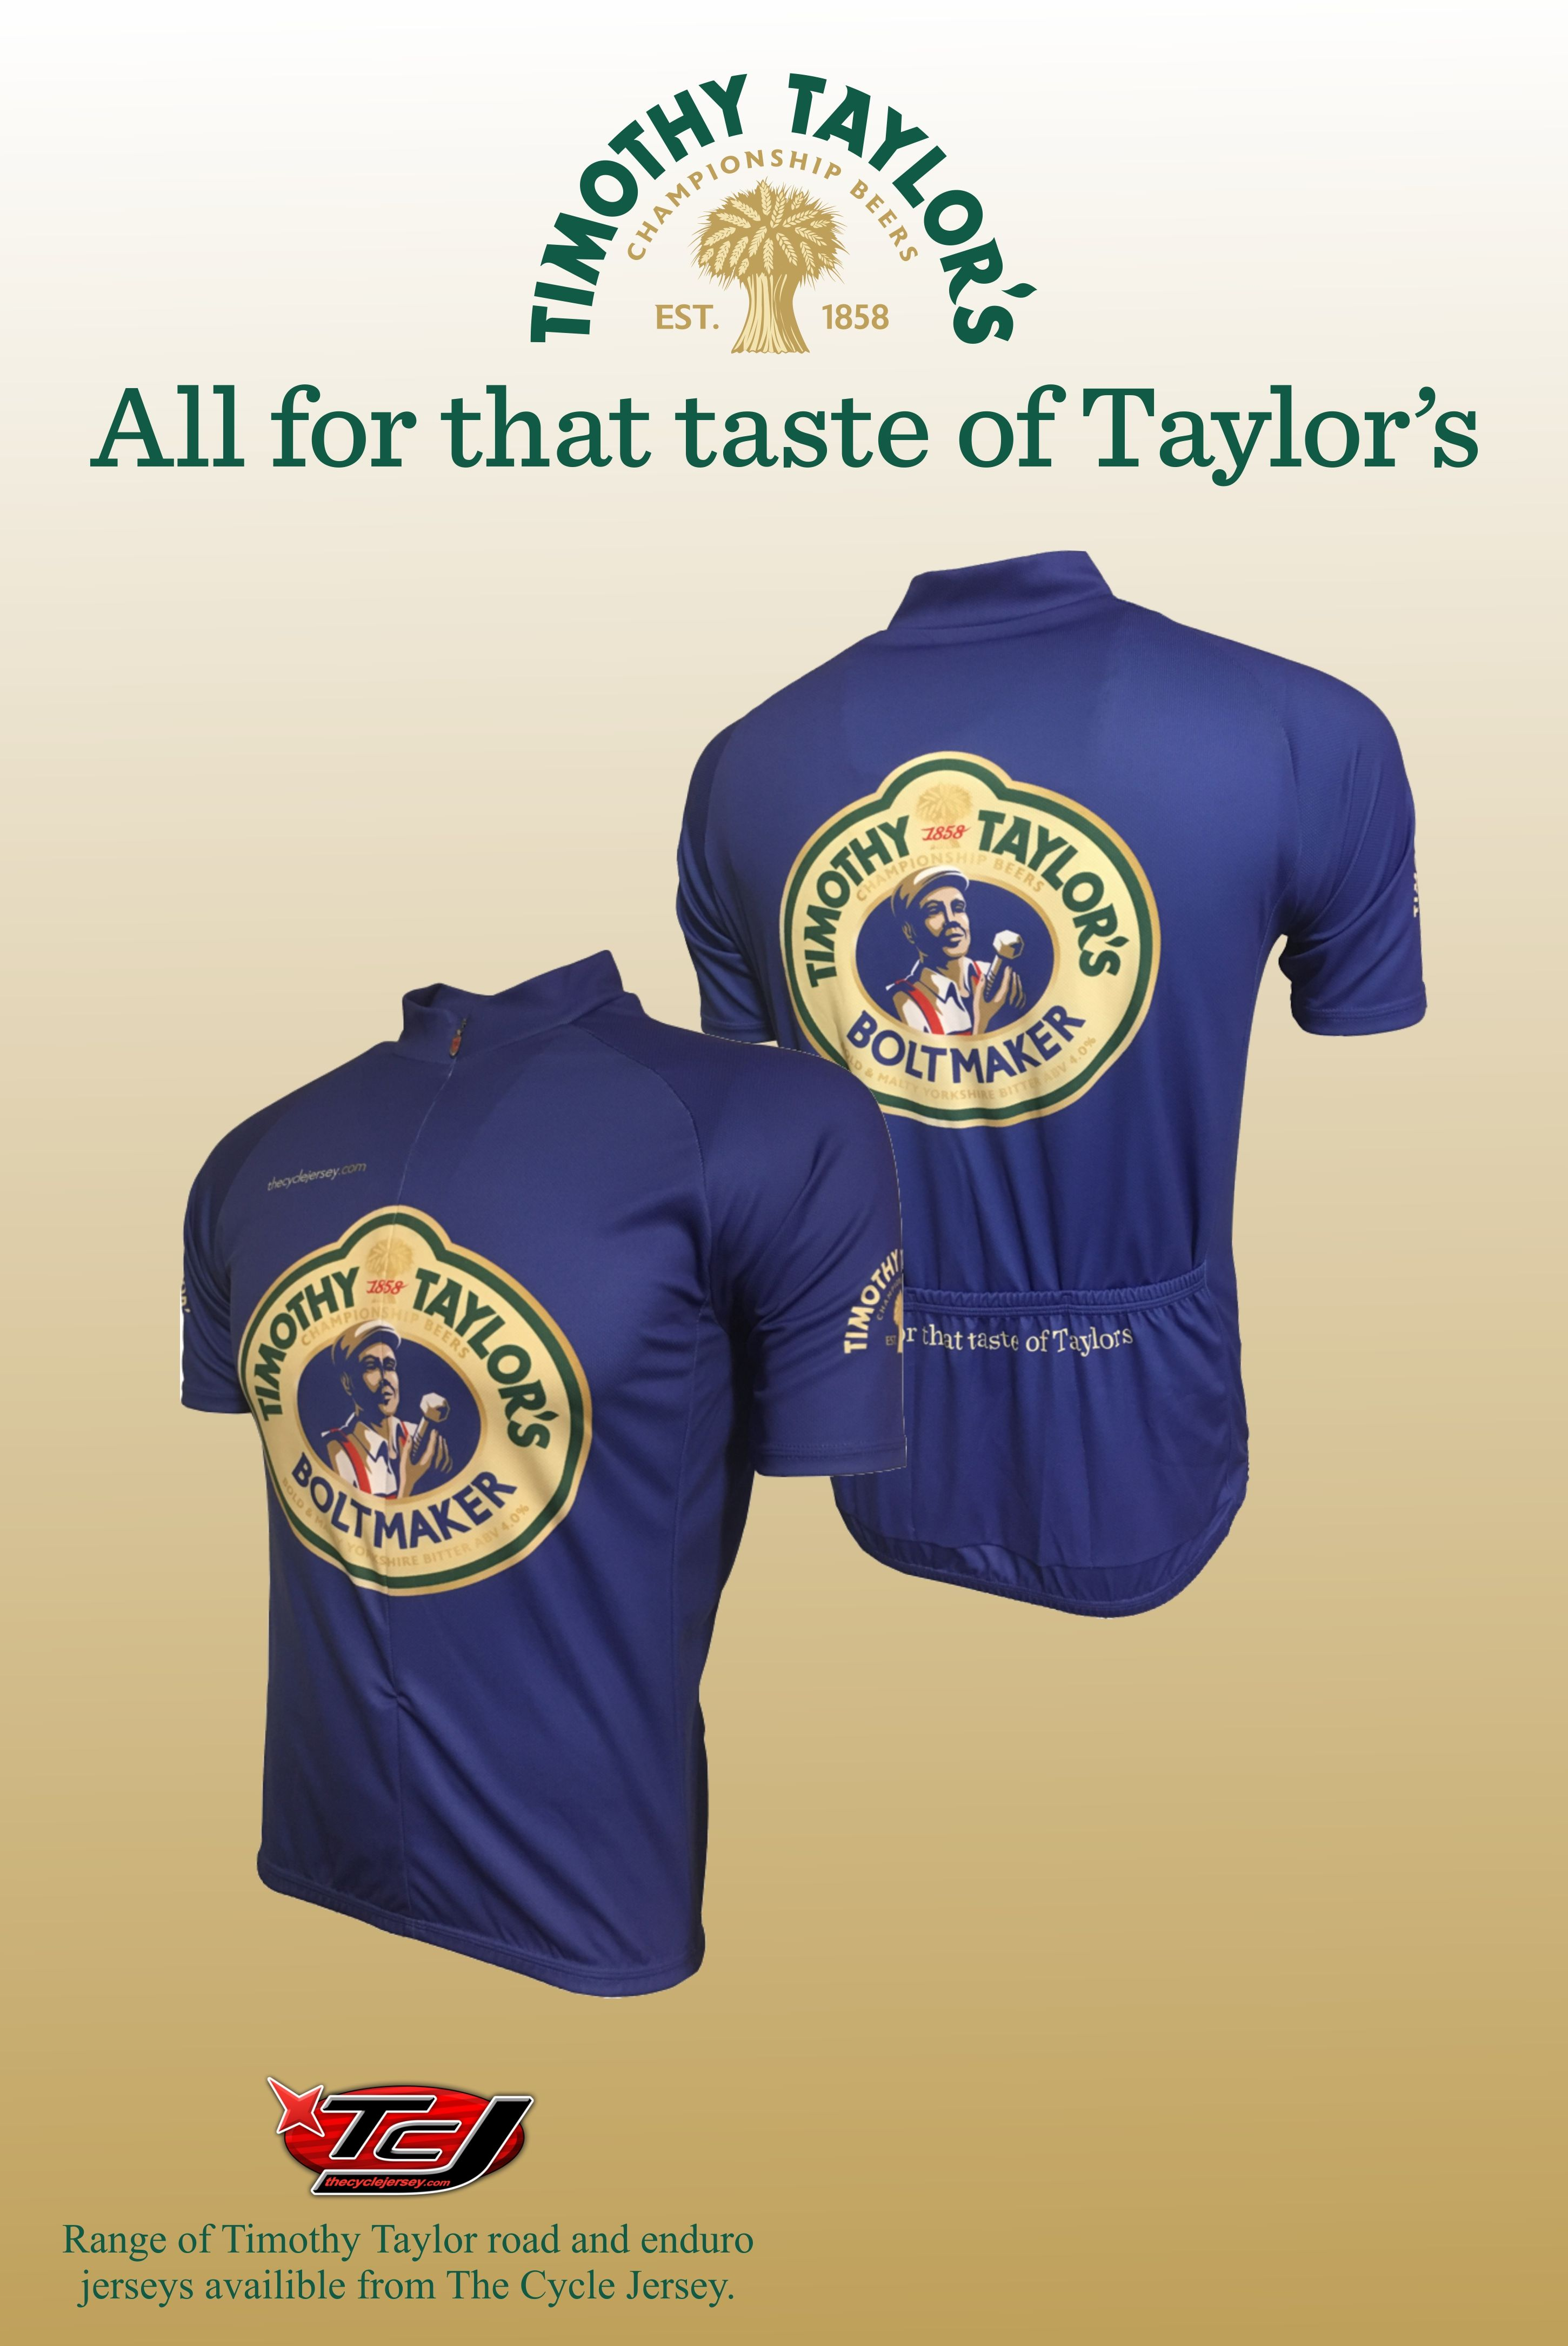 a3f4e0fc8 Why not a Timothy Taylor cycling jersey so they can enjoy a post ride  tipple in a matching jersey